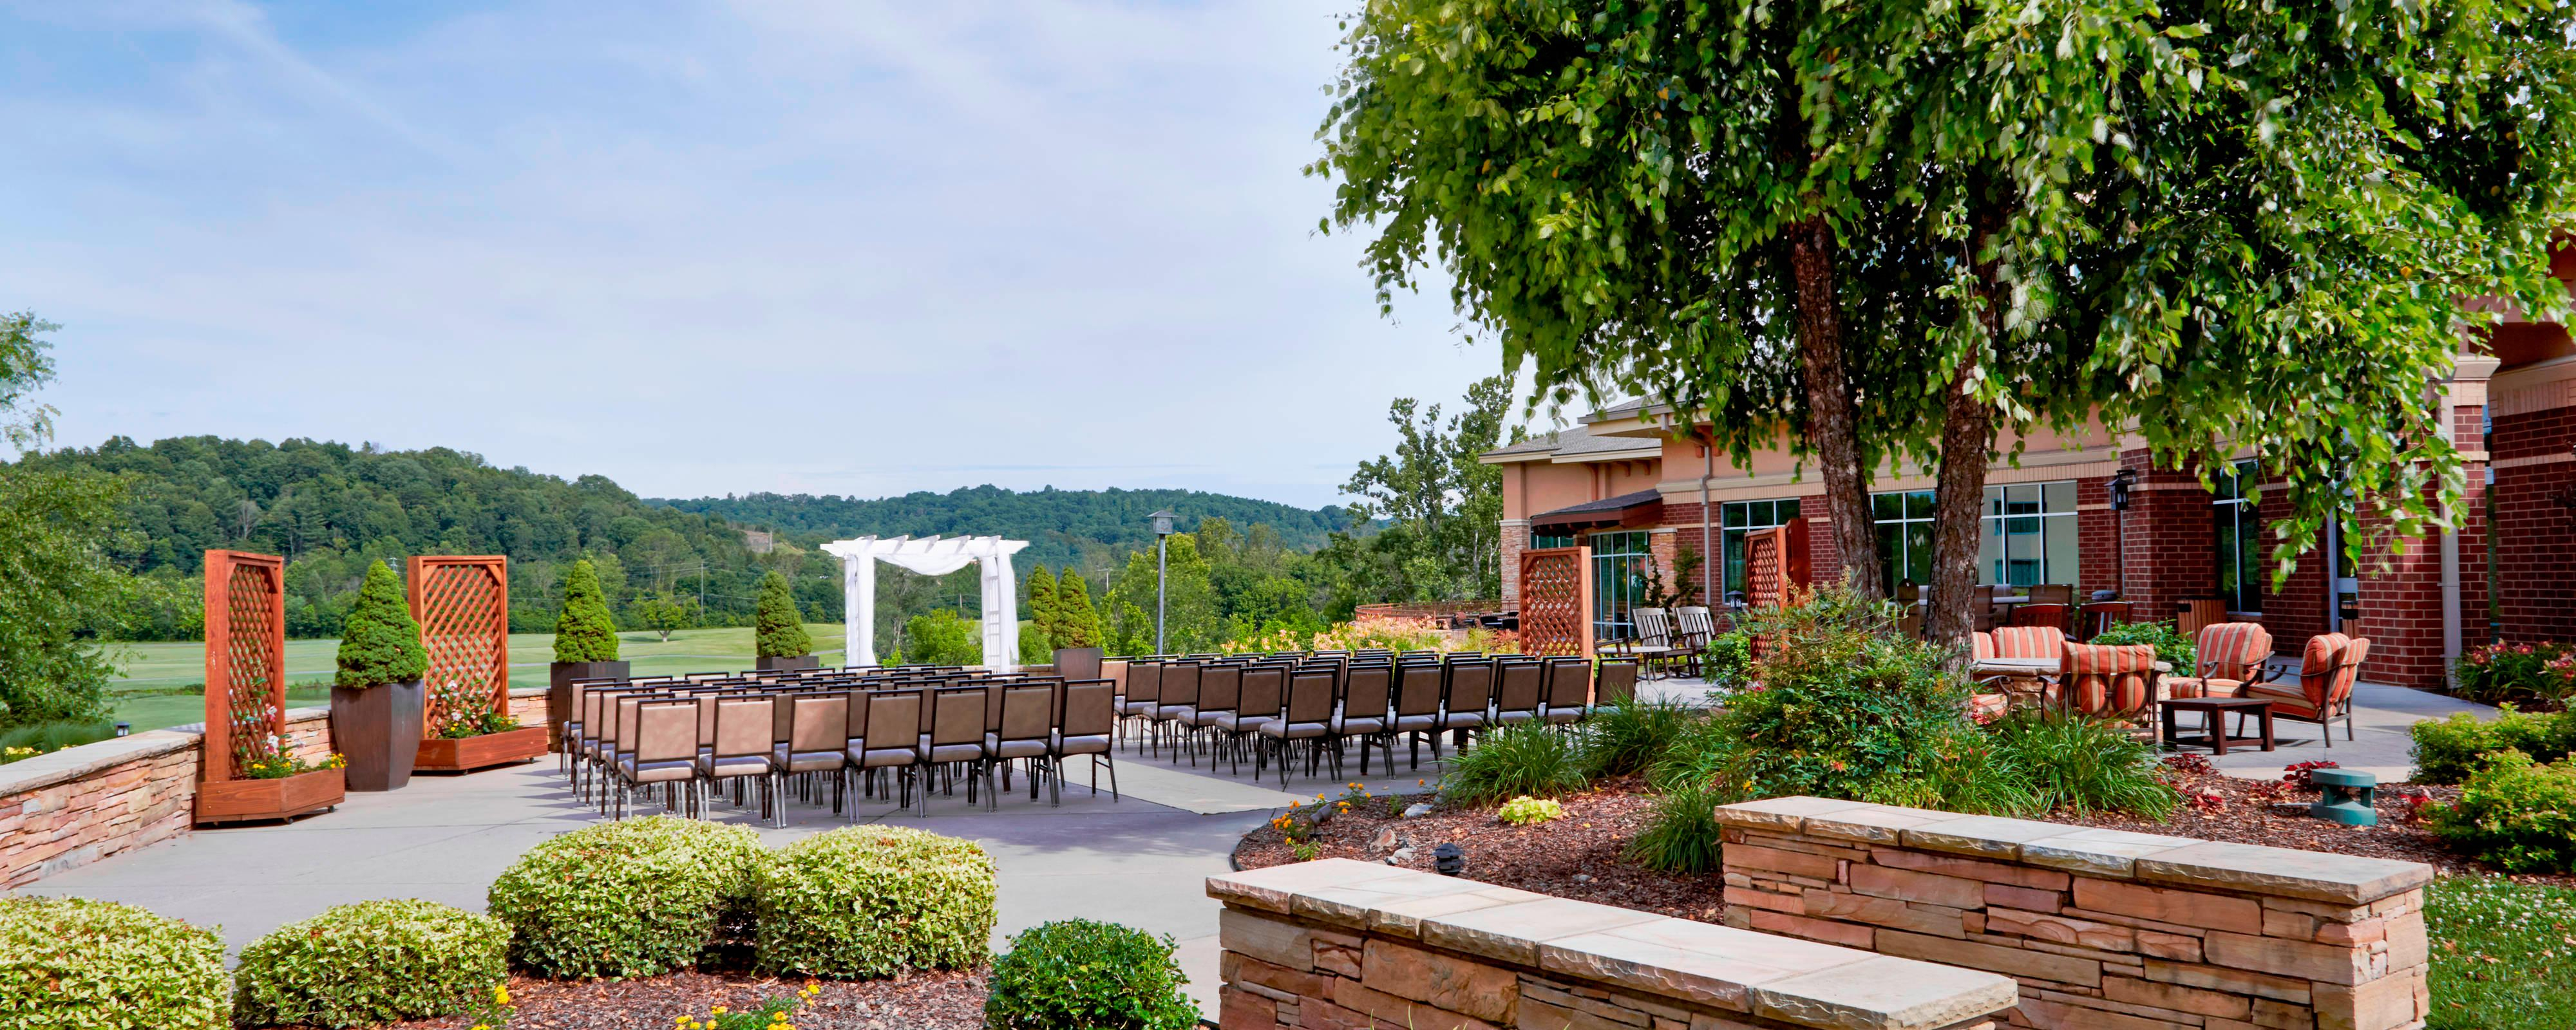 Wedding Venue Kingsport Tn - Reception Venues | Meadowview Within April 17 At Kingsport Medowview Convention Center